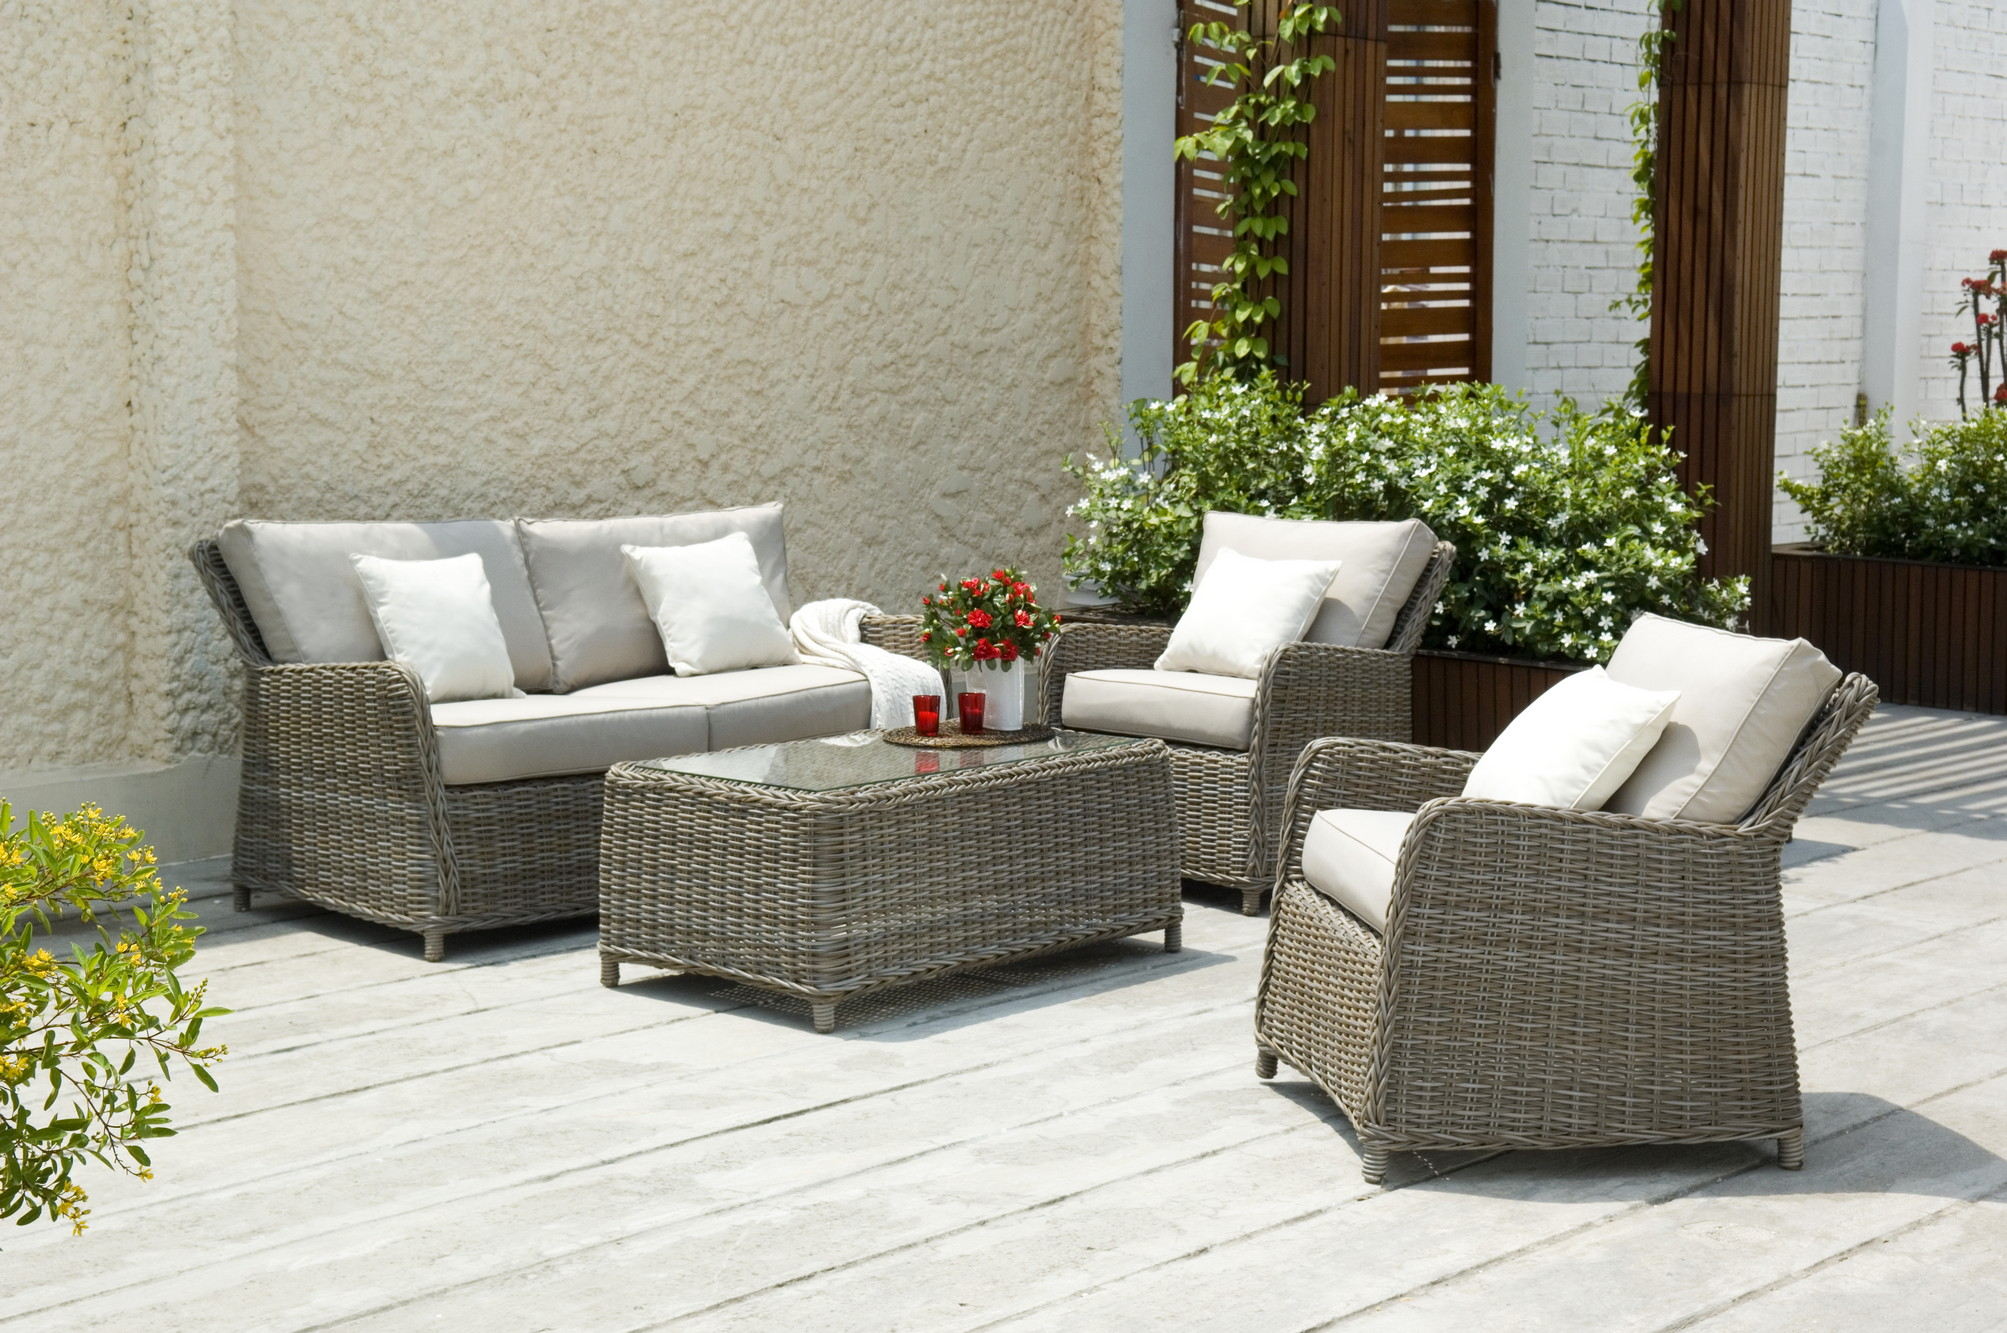 Images of rattan furniture also with a weatherproof rattan garden furniture also with  a chfoxjh